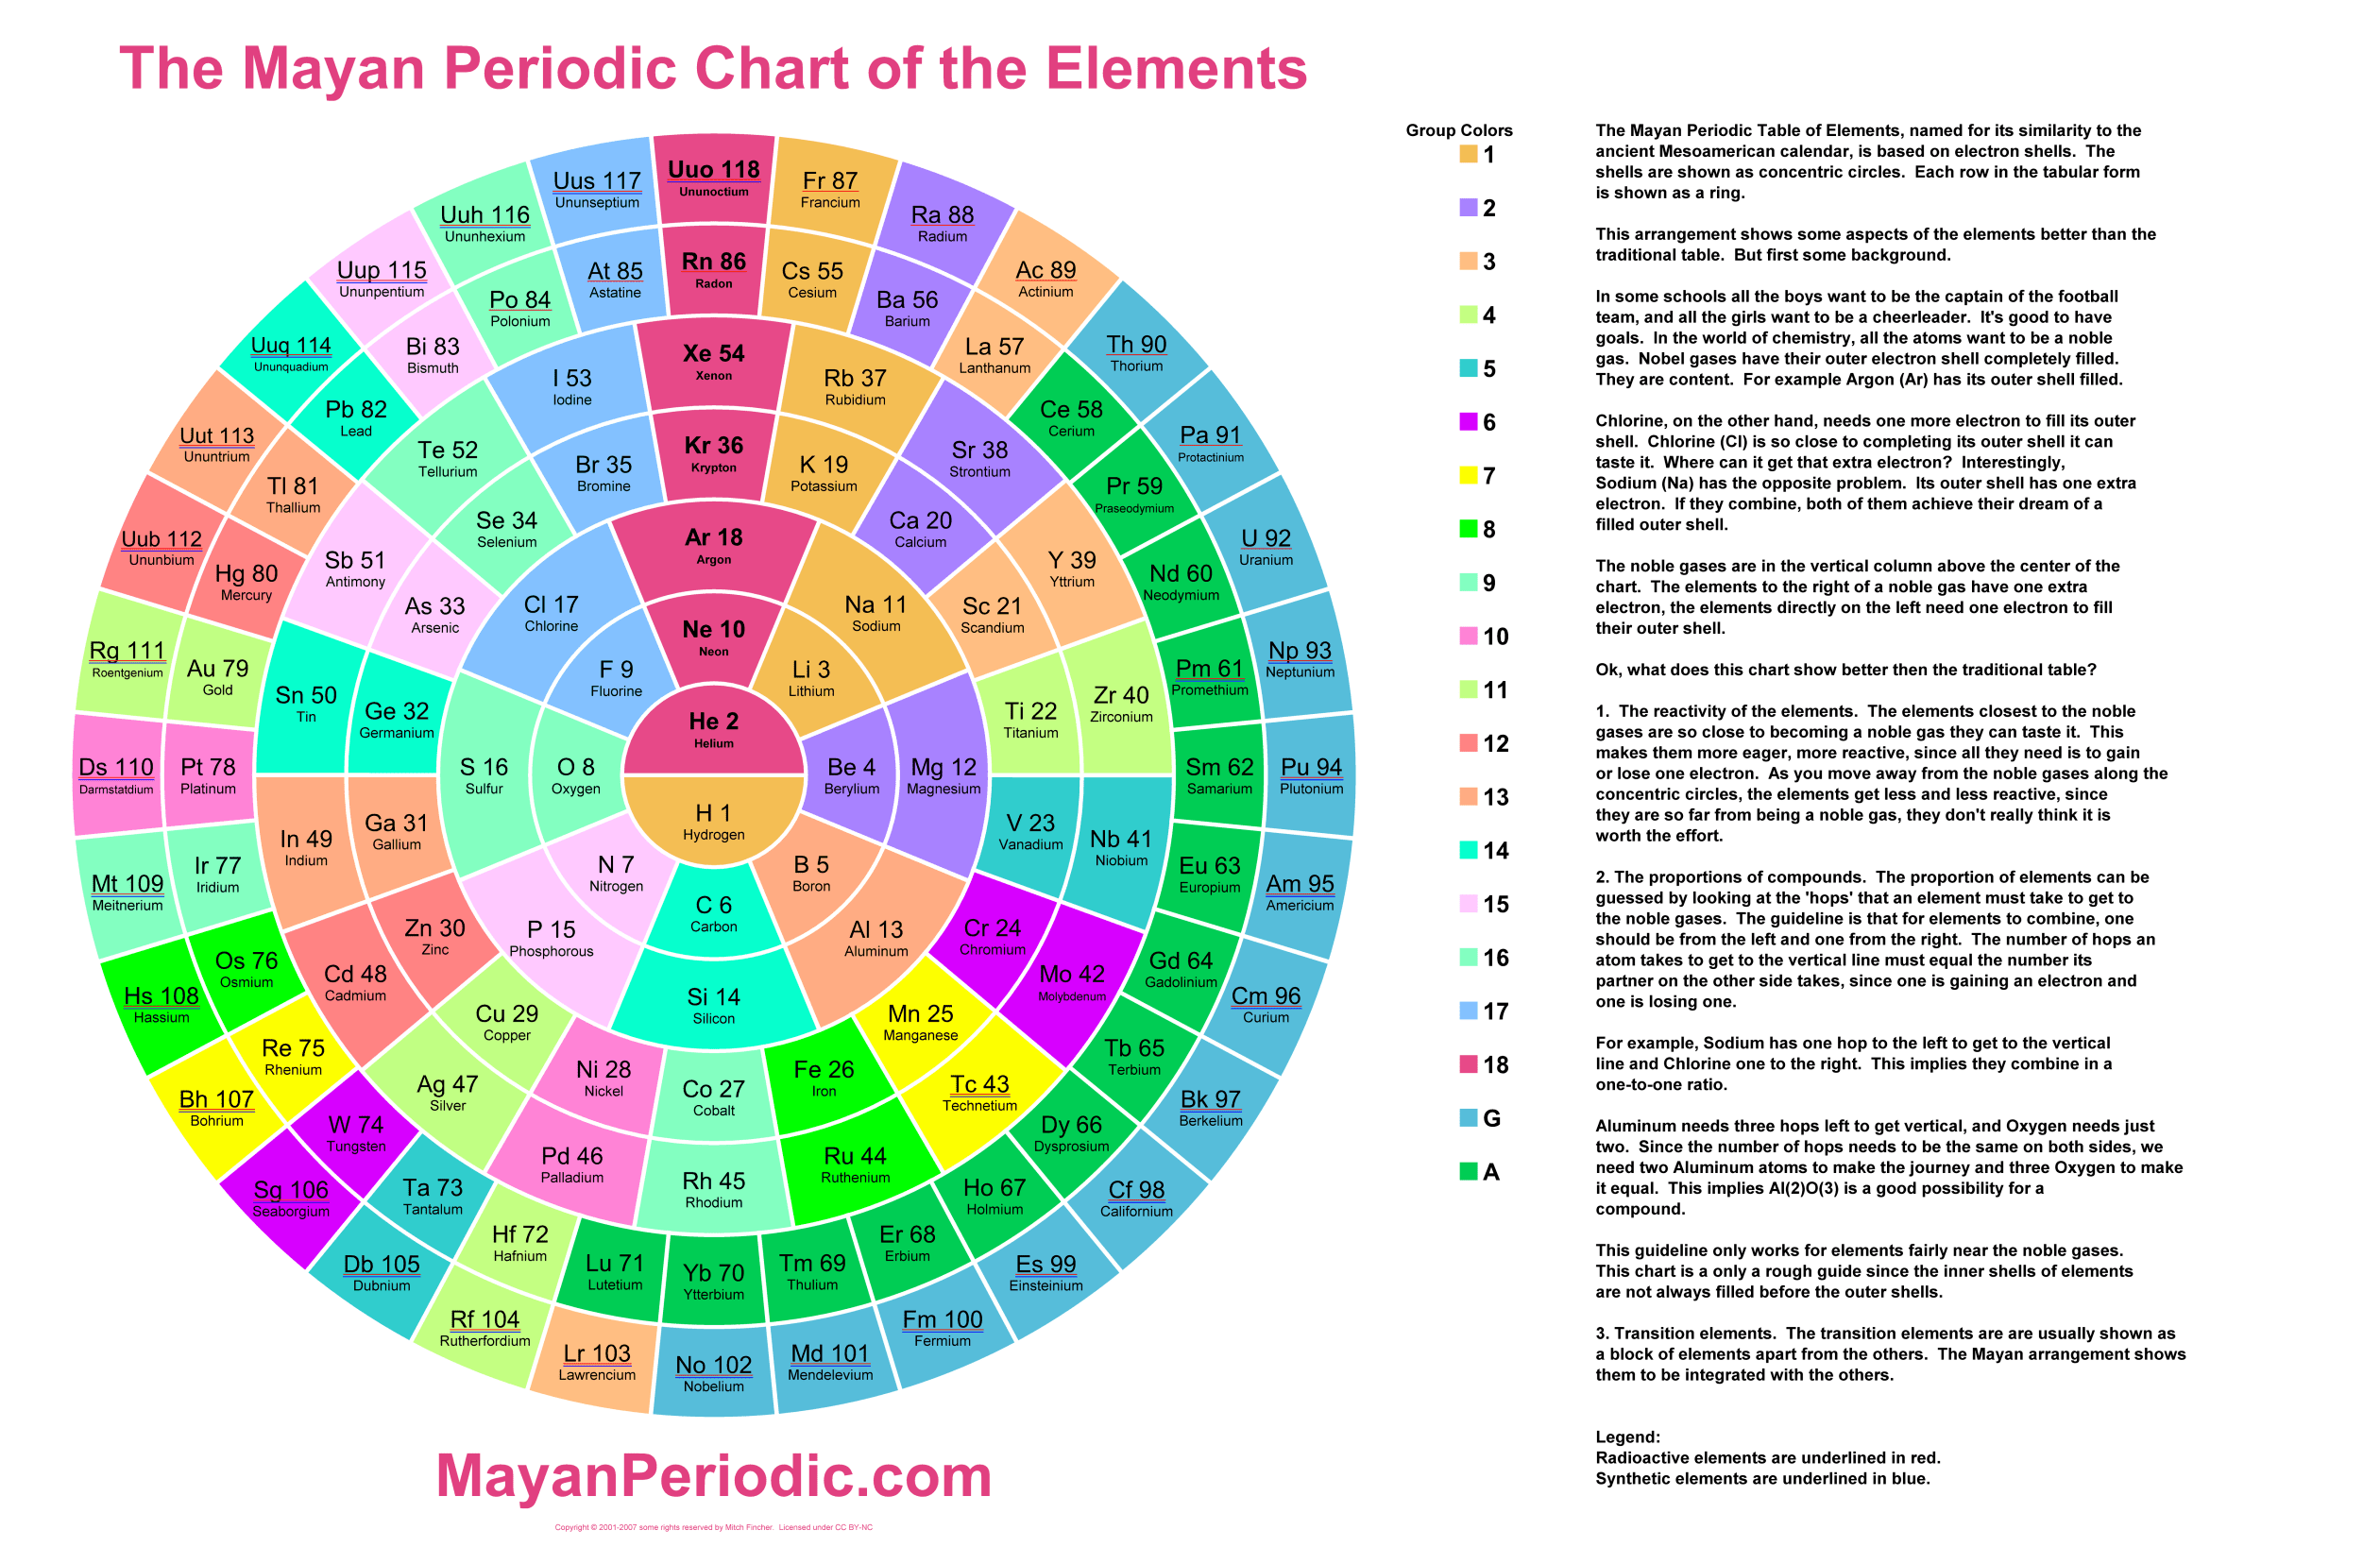 Mayan Periodic Chart Of The Elements